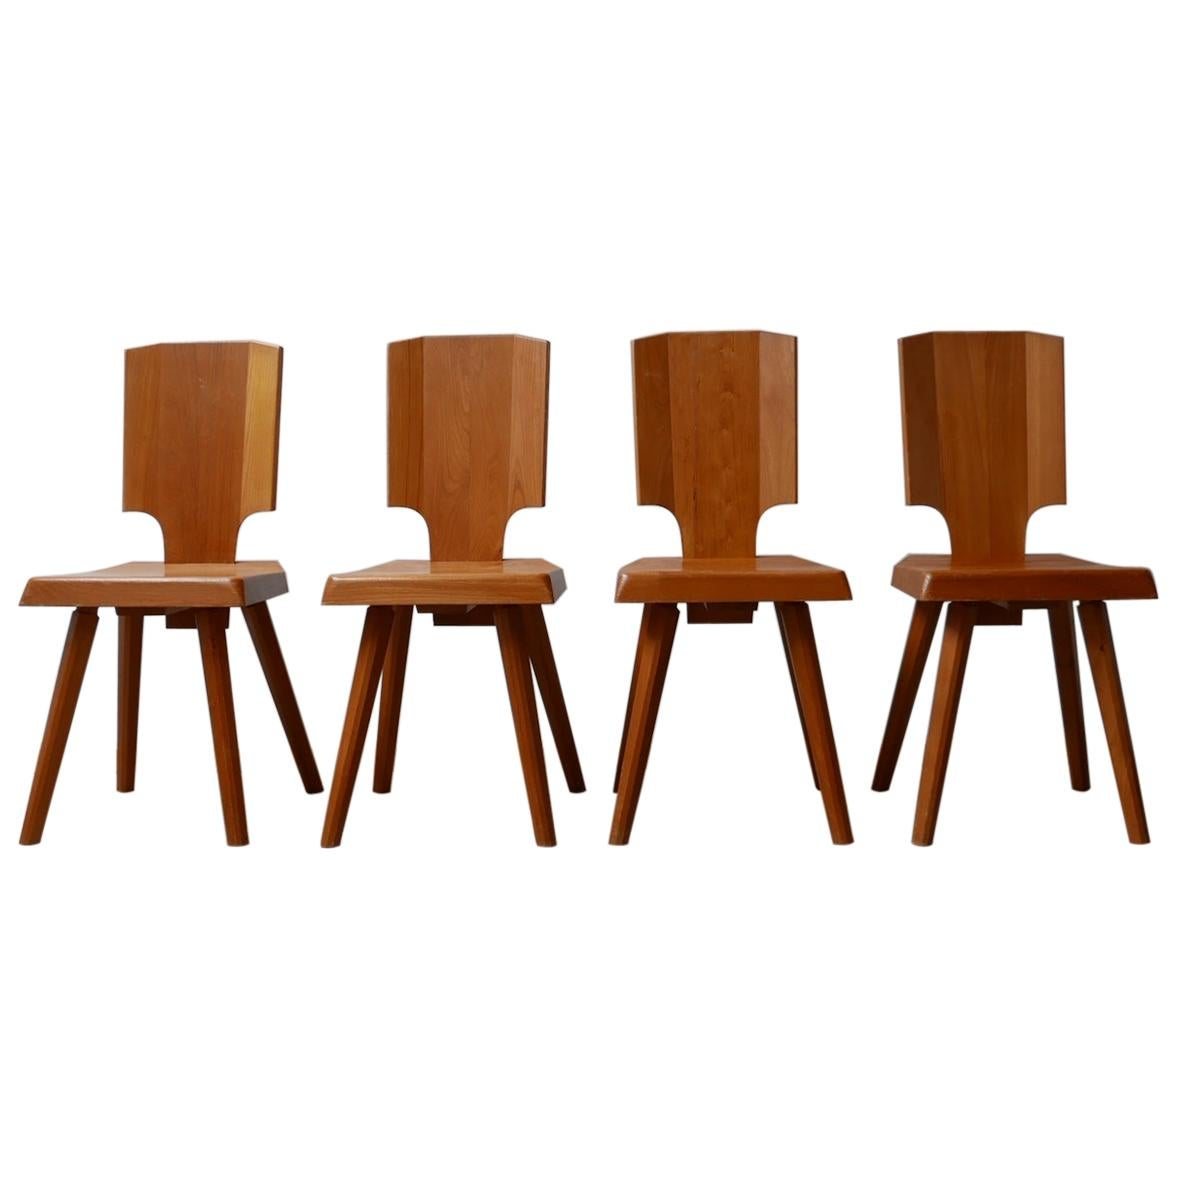 Pierre Chapo Set of Four S28 Elm Midcentury French Dining Chairs '4-6'